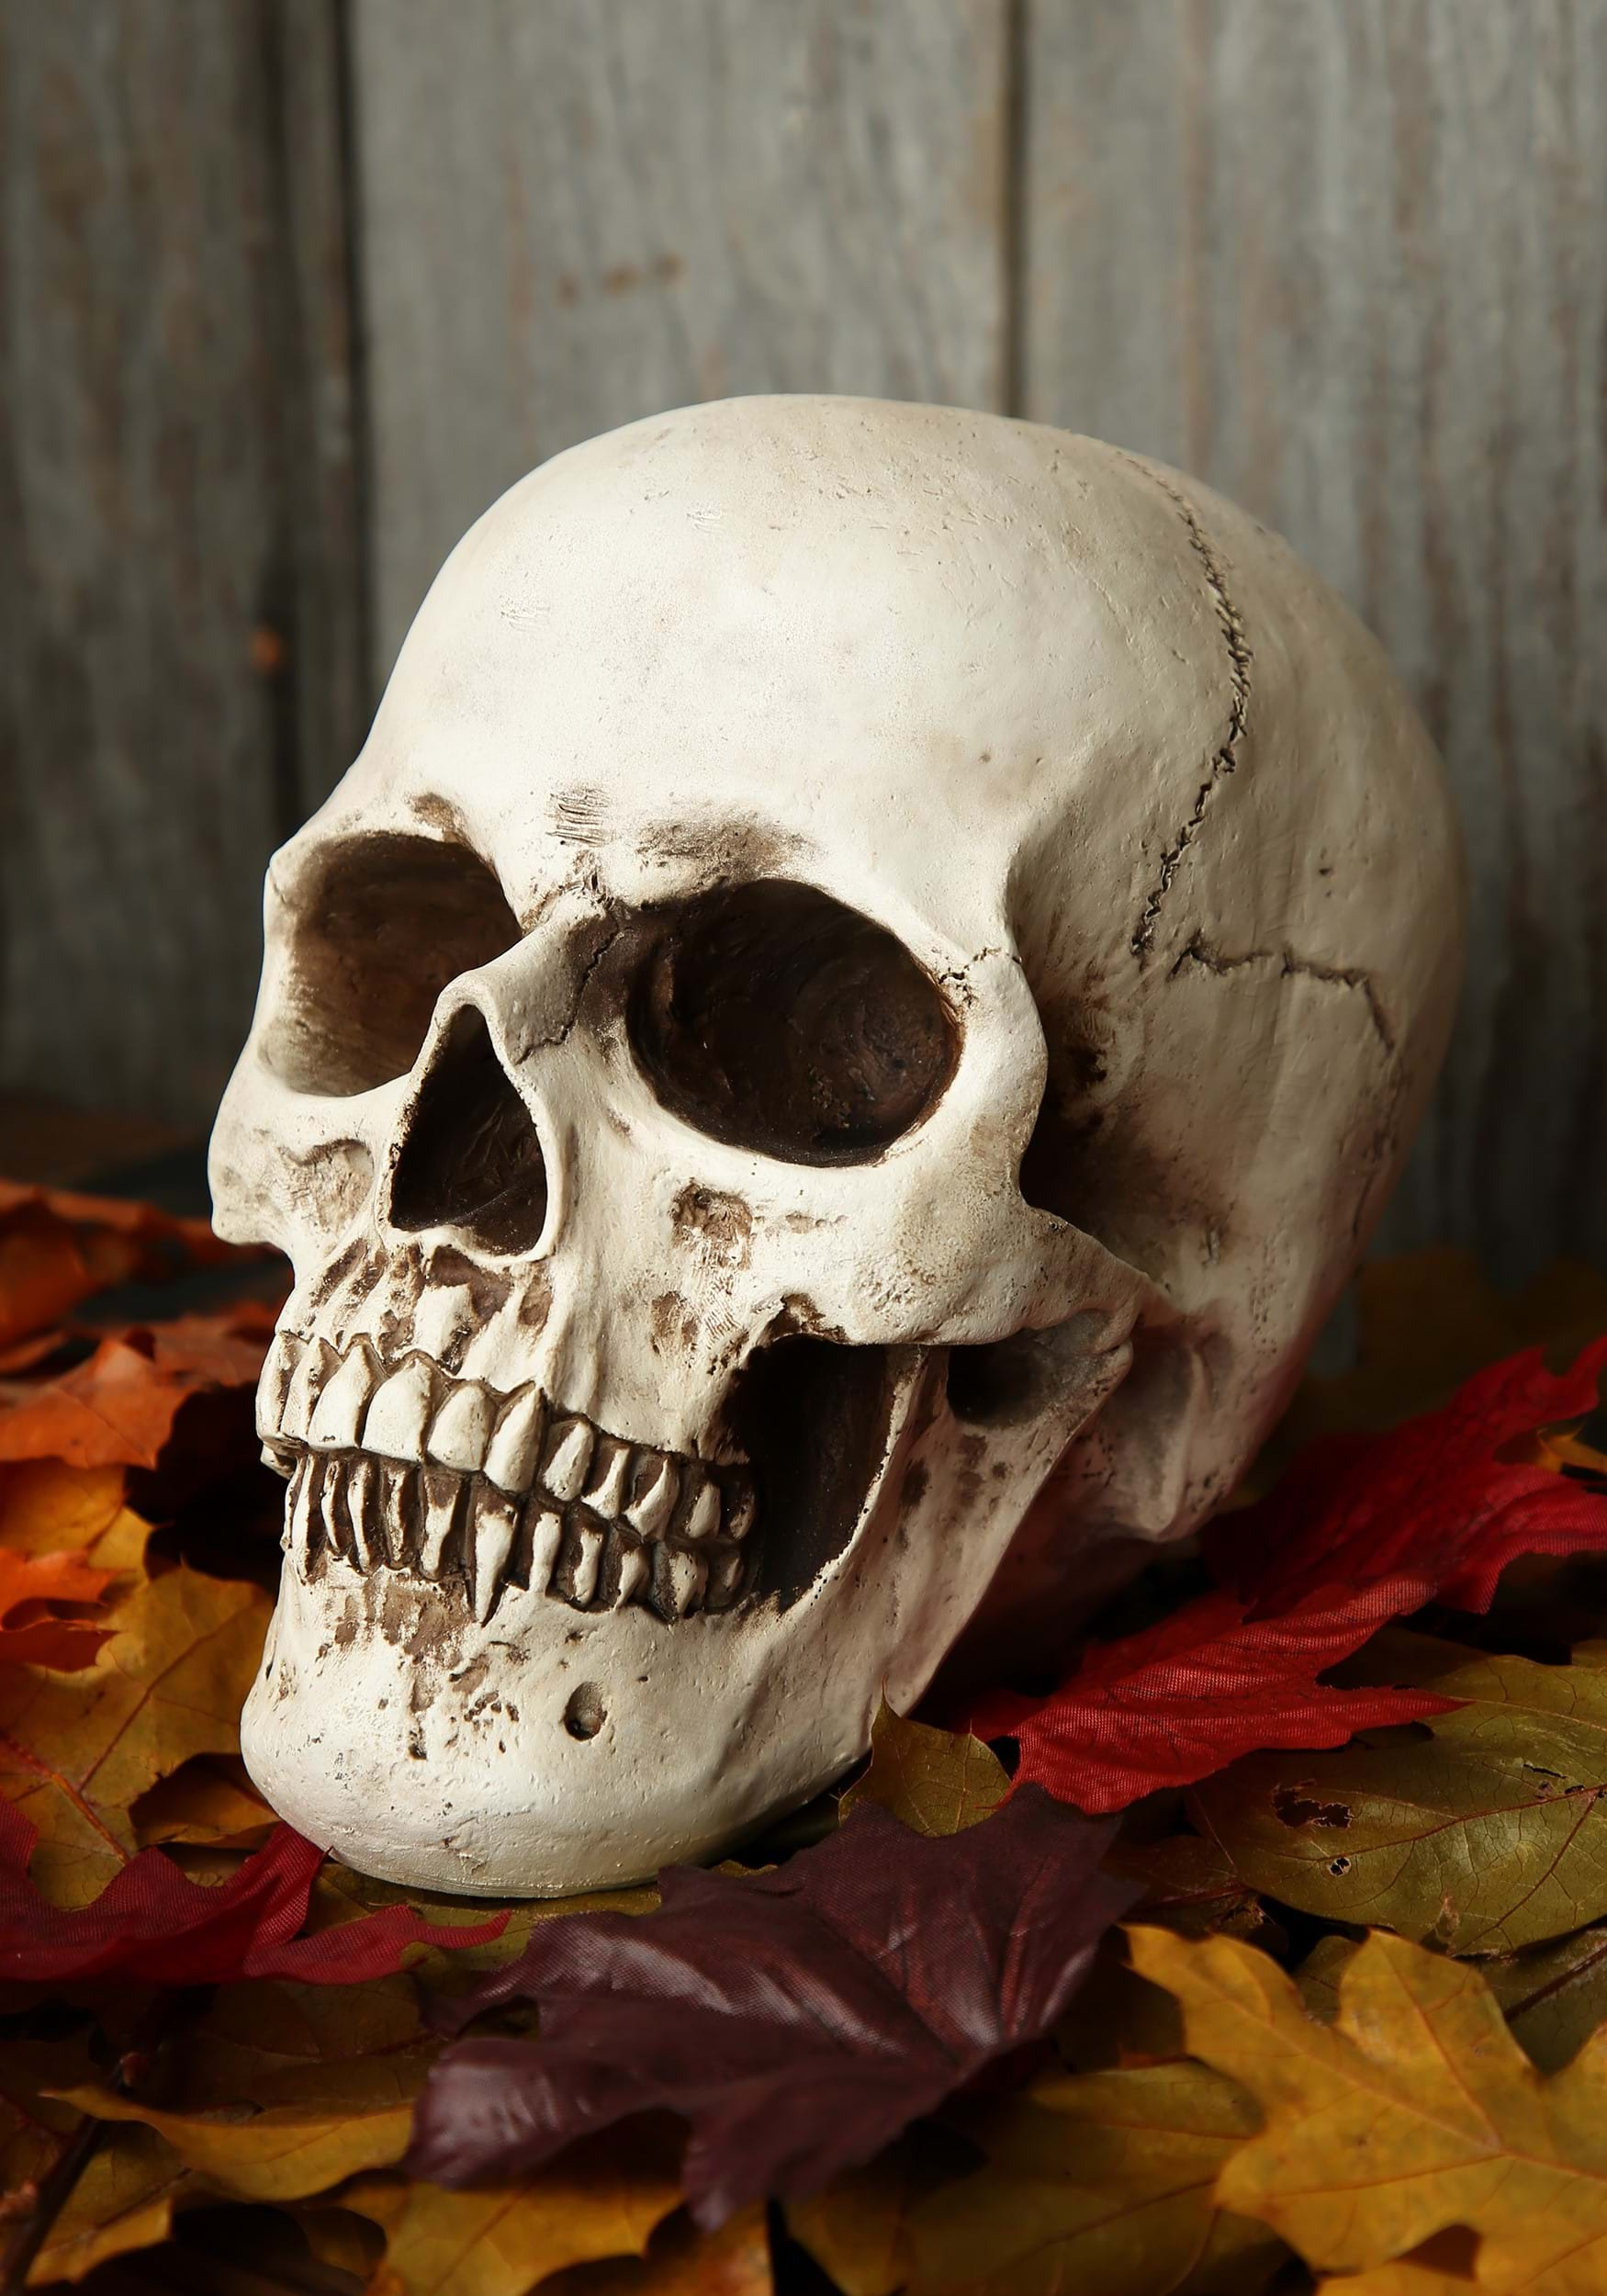 Halloween skull decorations - Deluxe Realistic Skull